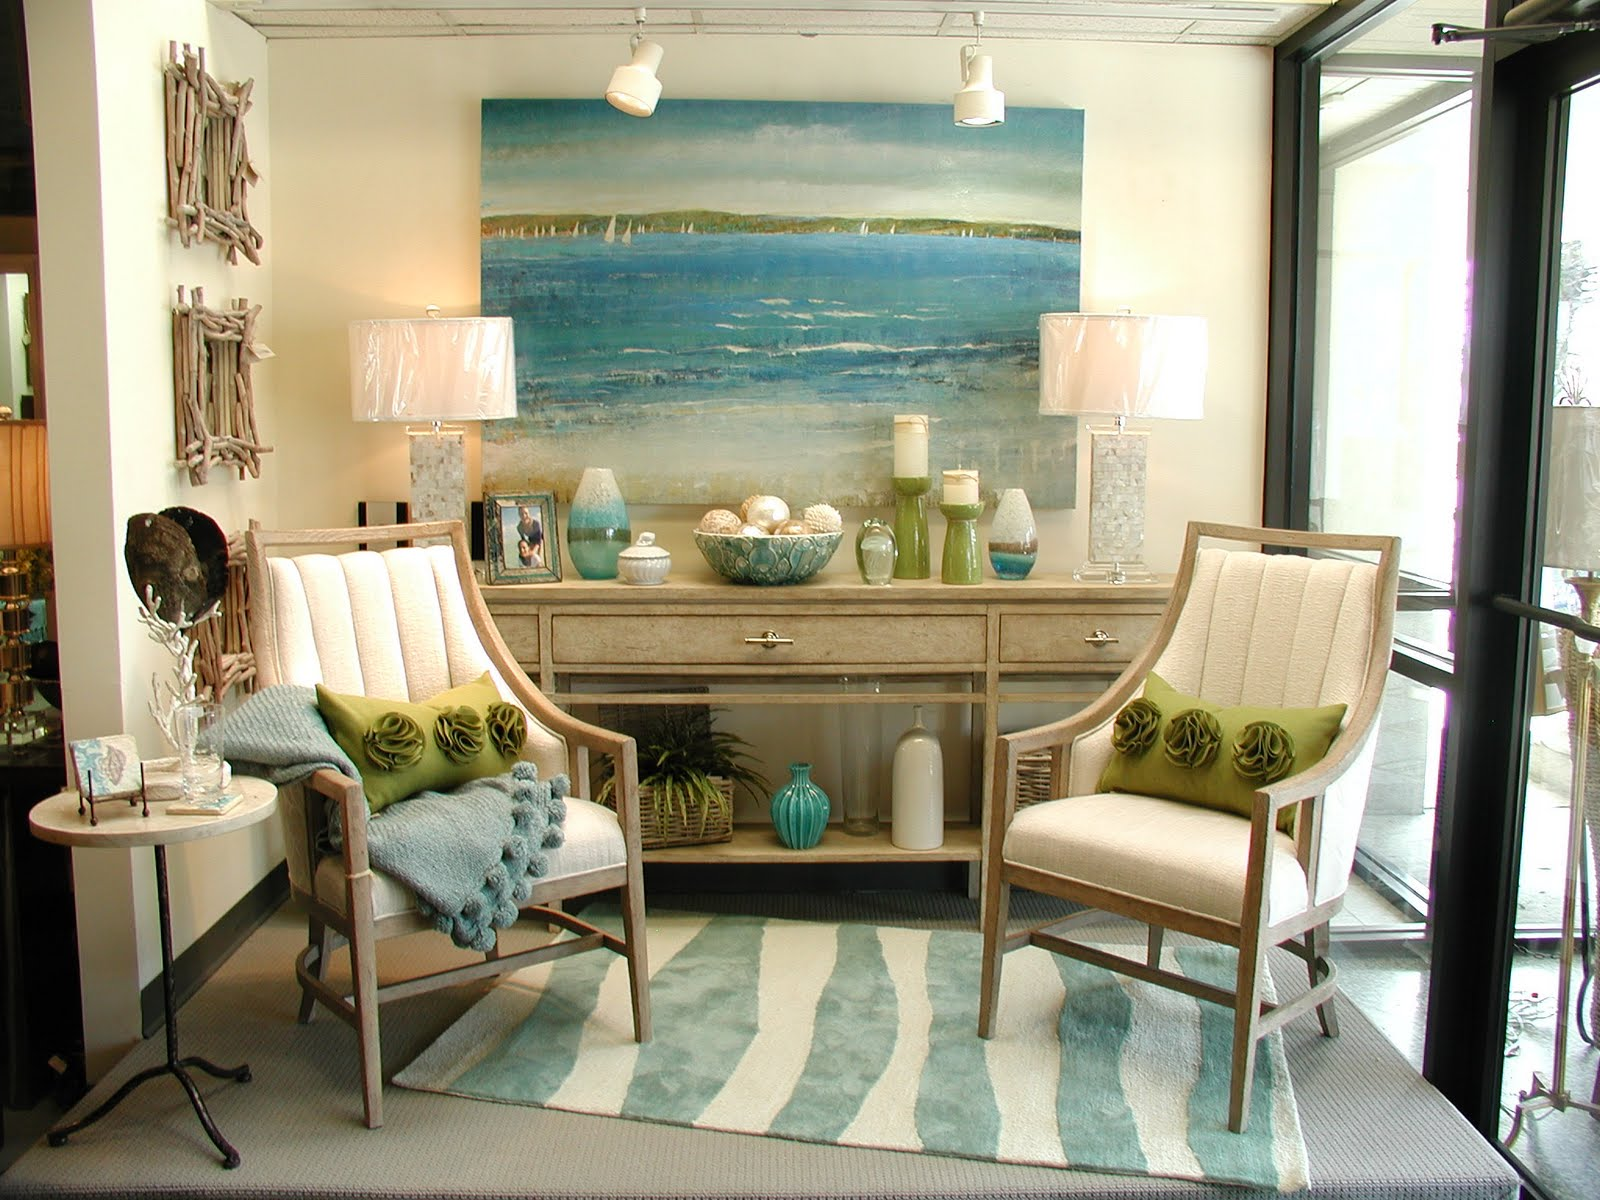 Details of design interior design in annapolis this summer - Home decor interior design ...